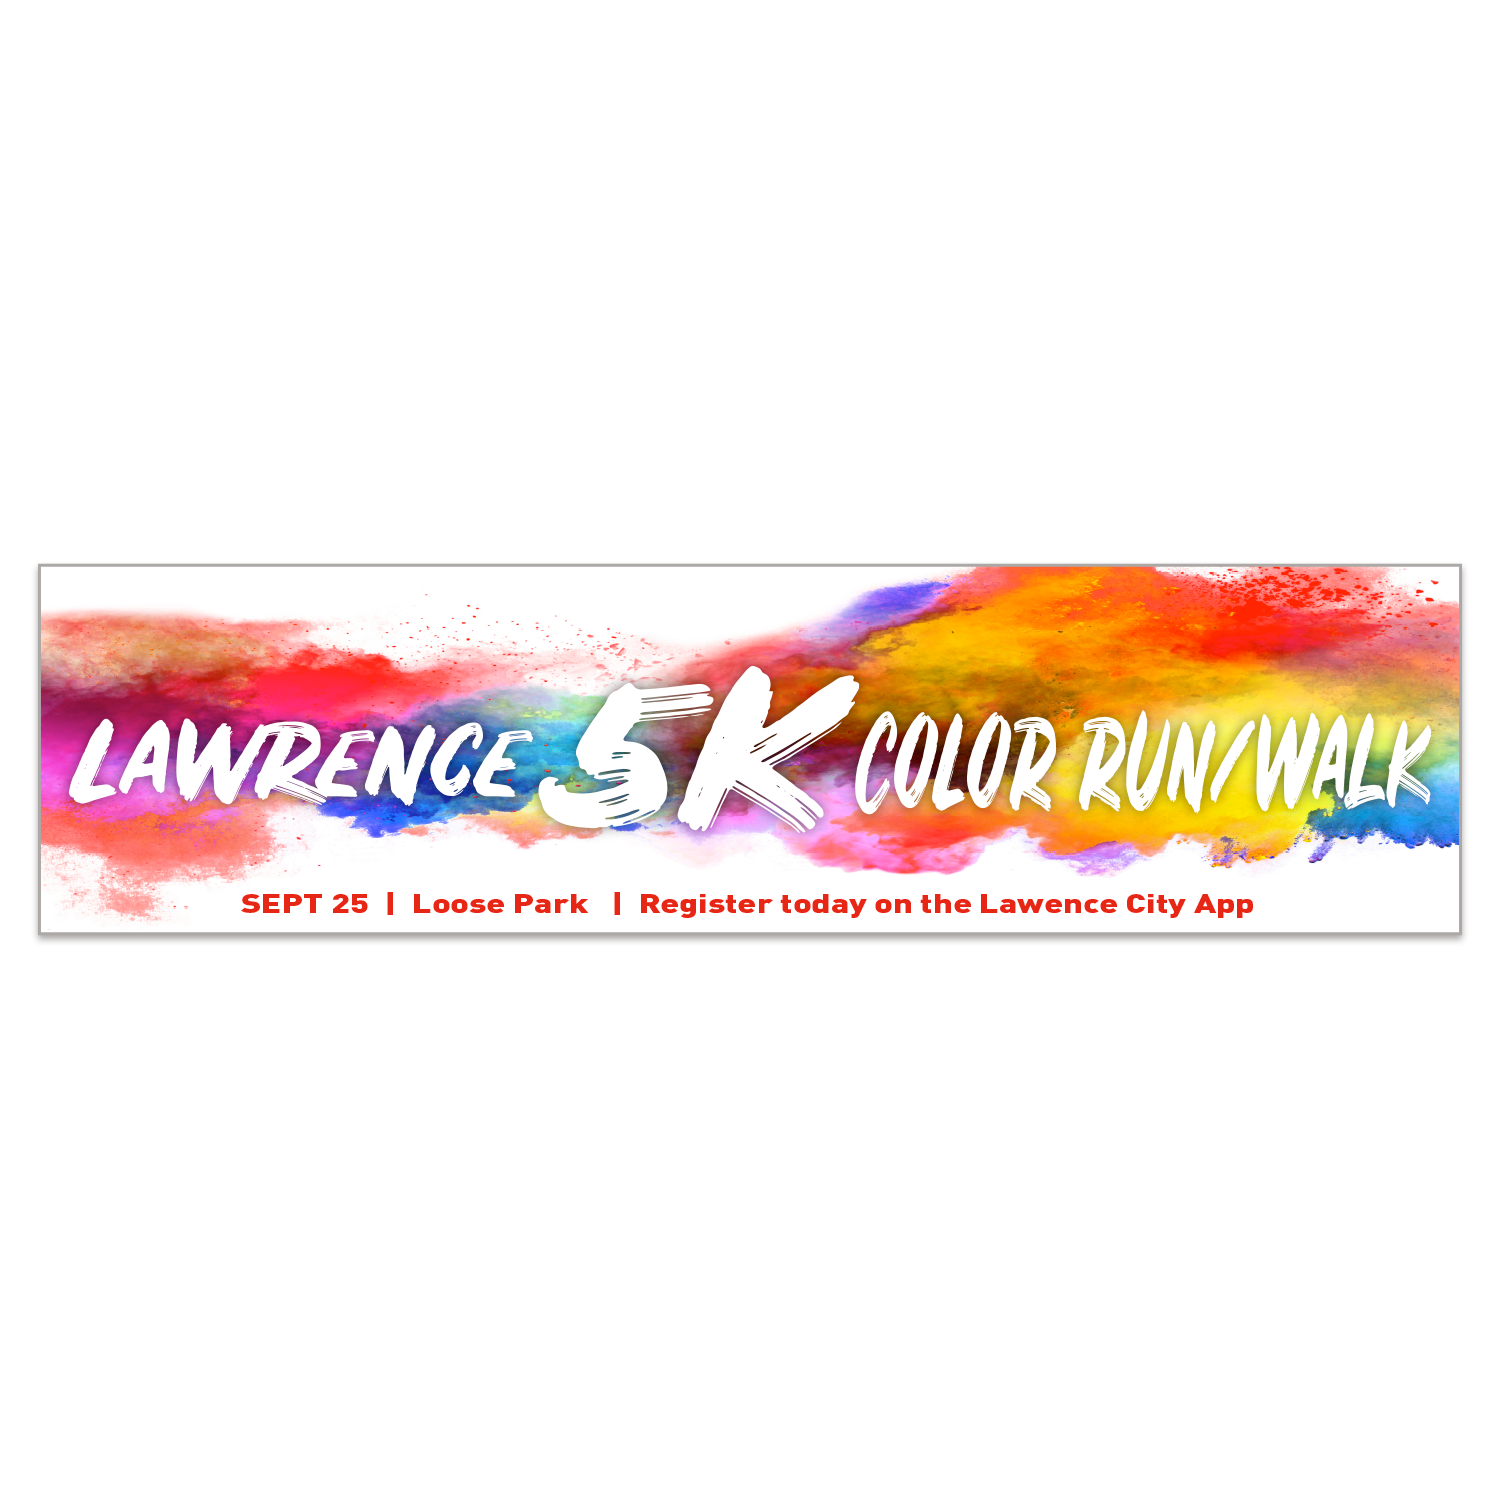 https://www.sswprinting.com/images/products_gallery_images/43223_Lawrence-5k_hi-res.png